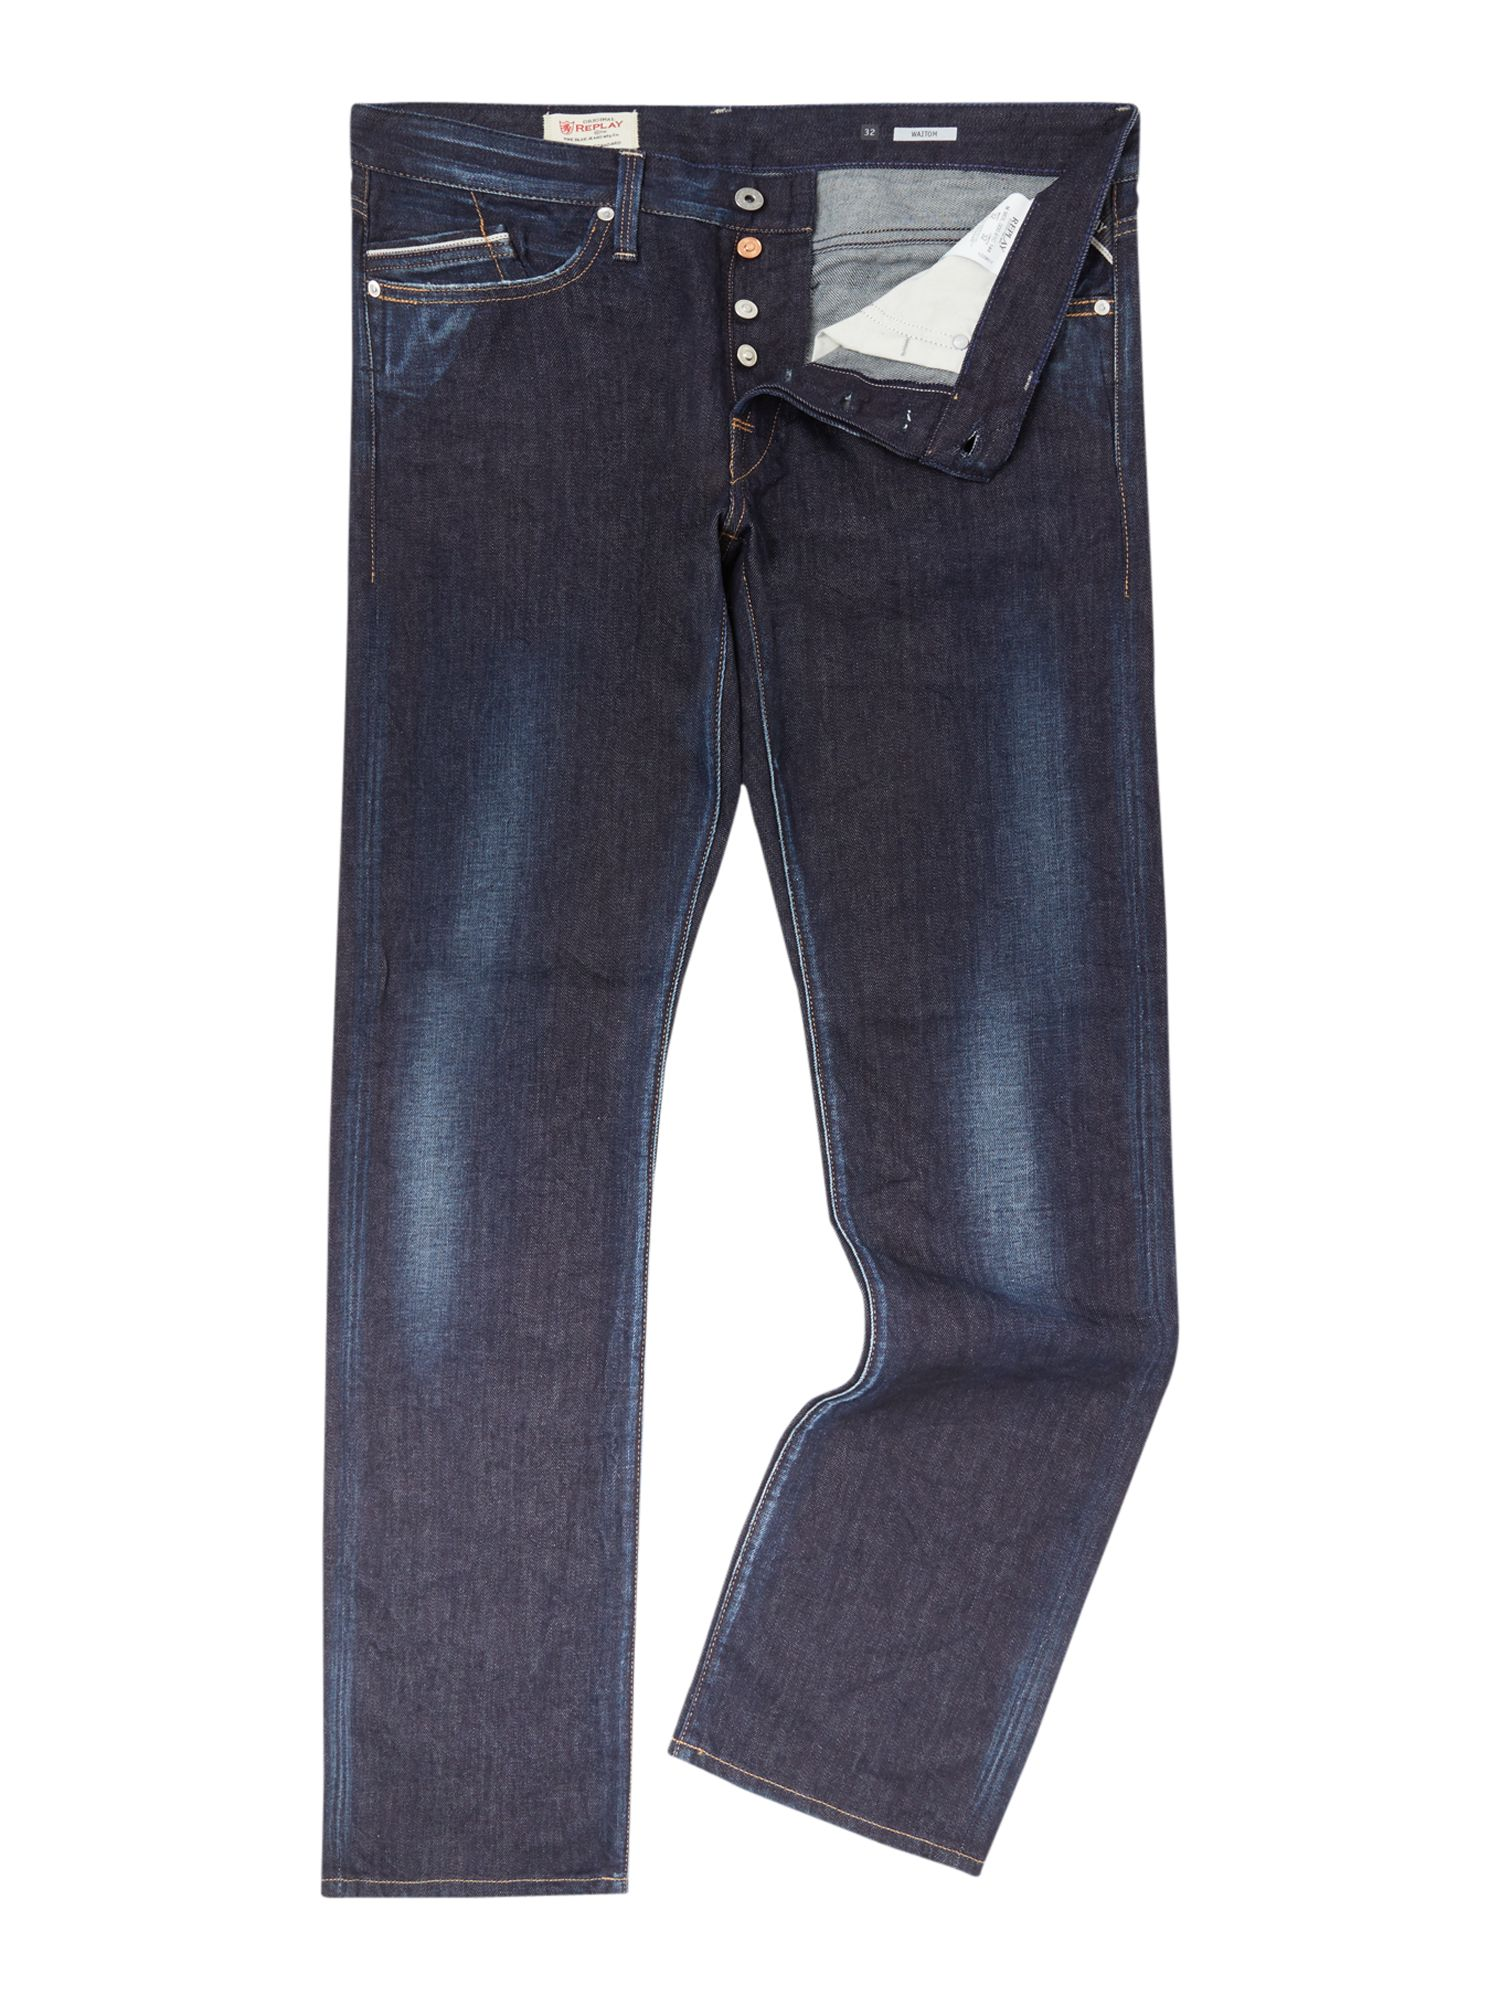 Mens Waitom Denim Dark Wash Jeans, Denim Dark Wash